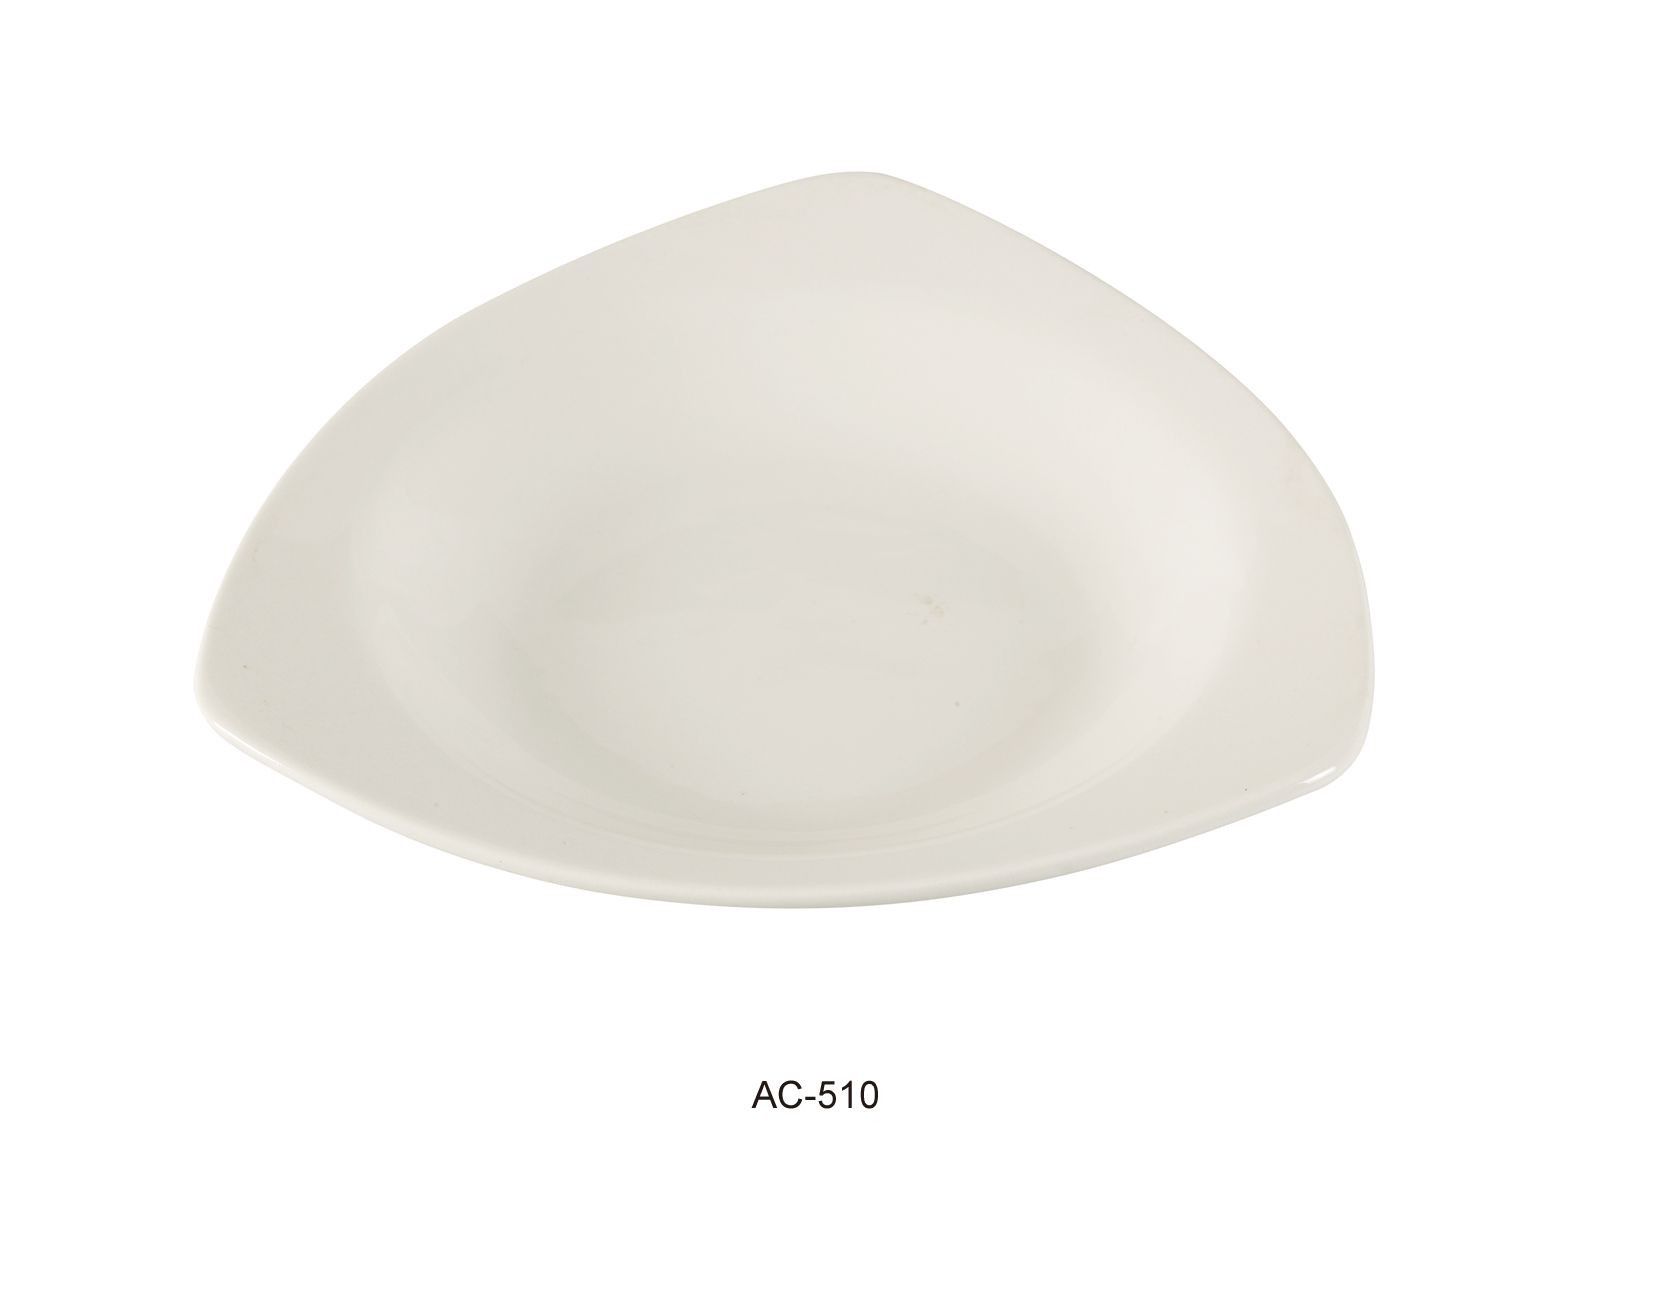 "Yanco AC-510 Abco 10 1/2"" Triangle Pasta Bowl 22 oz."